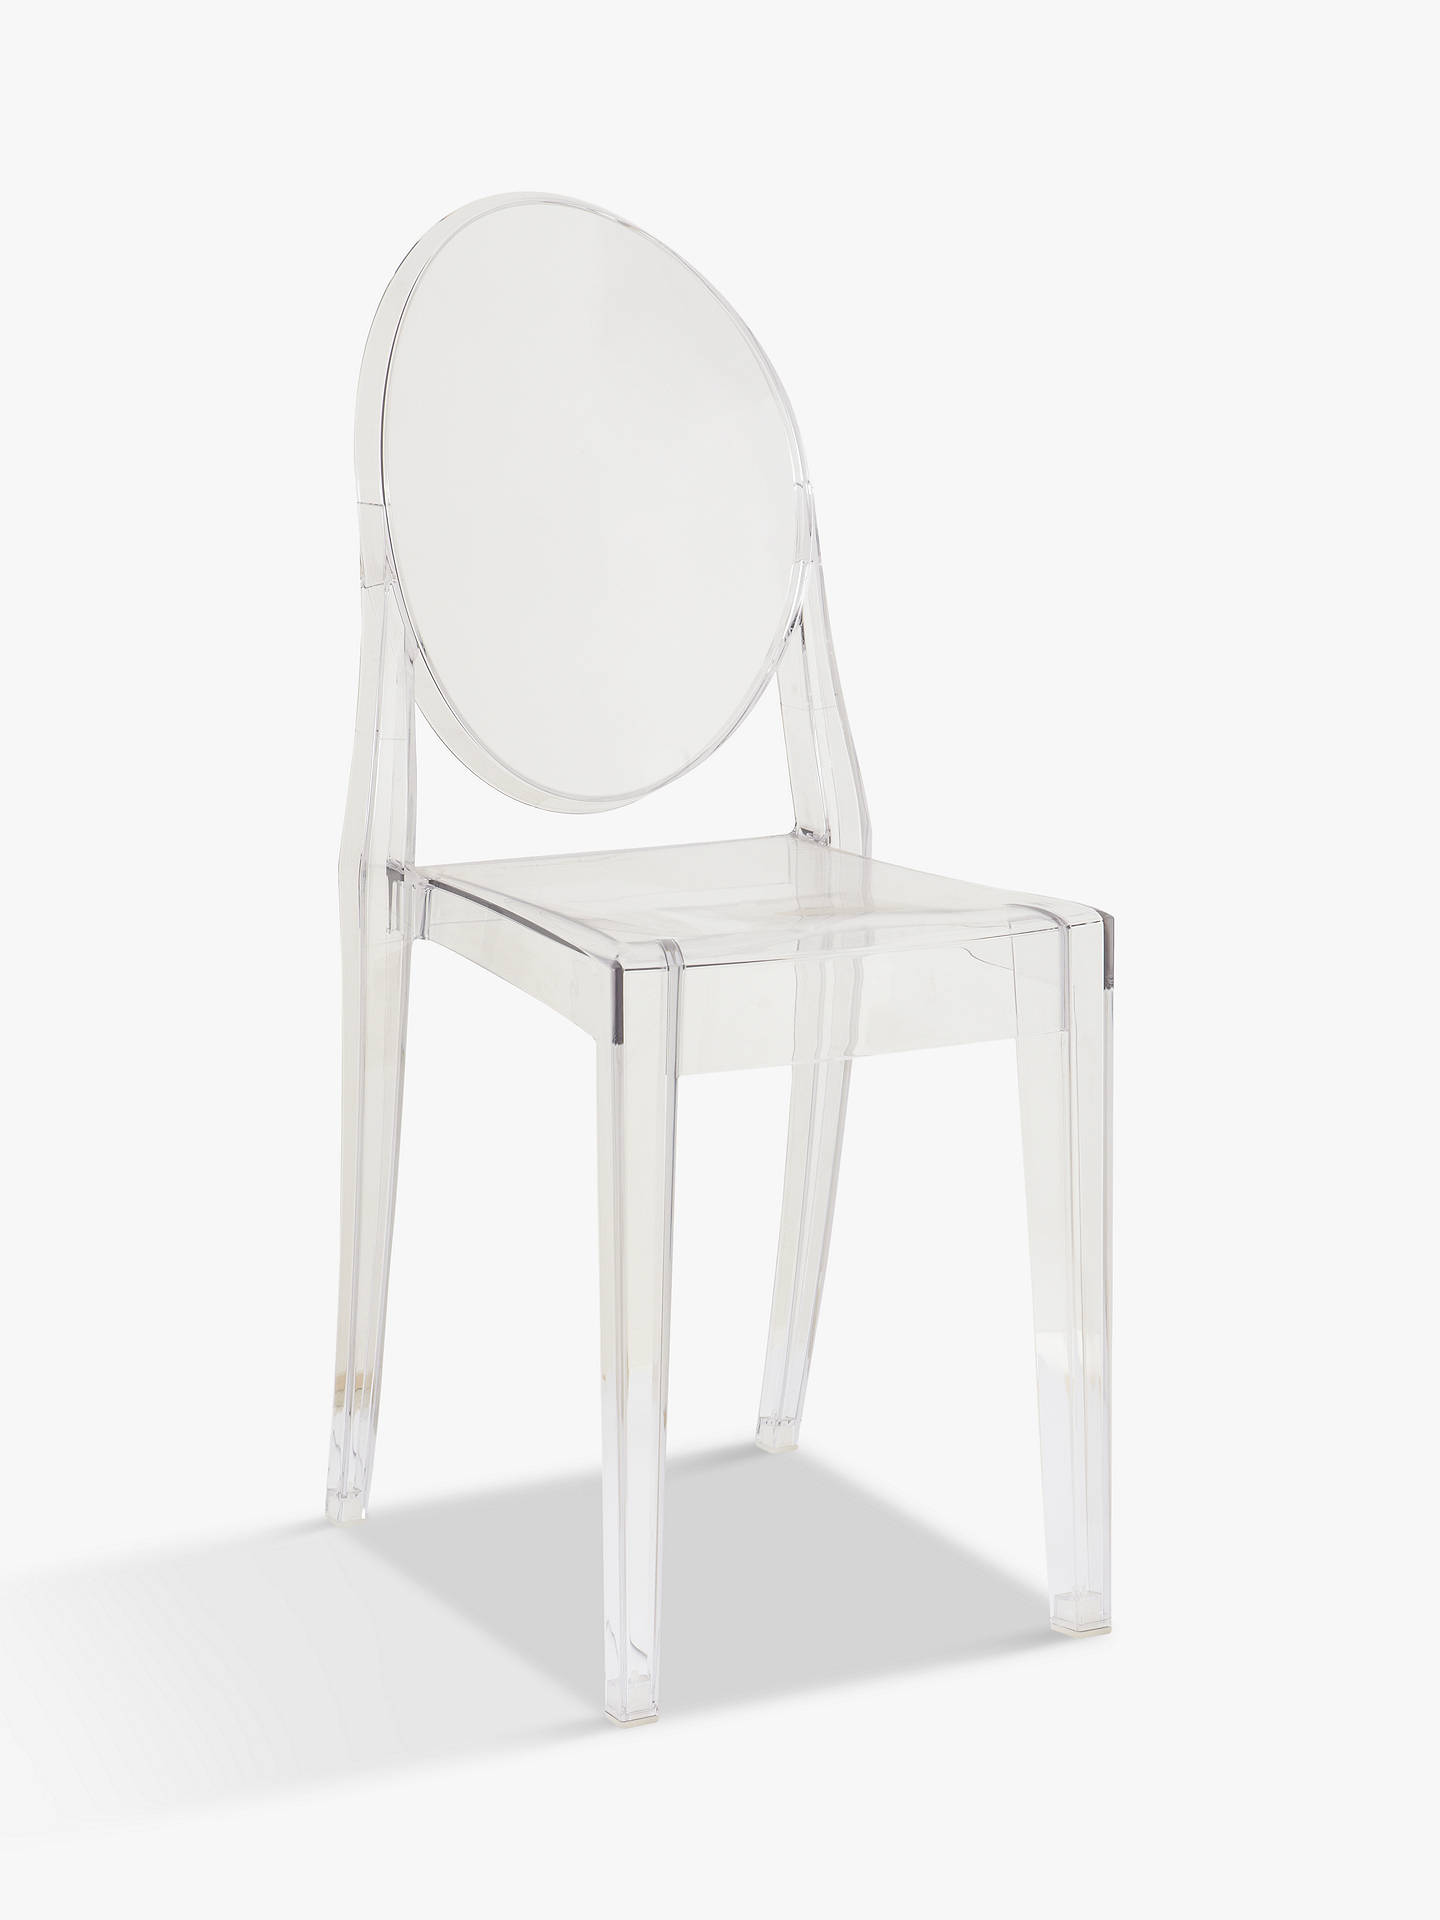 Philippe Starck For Kartell Victoria Ghost Chair At John